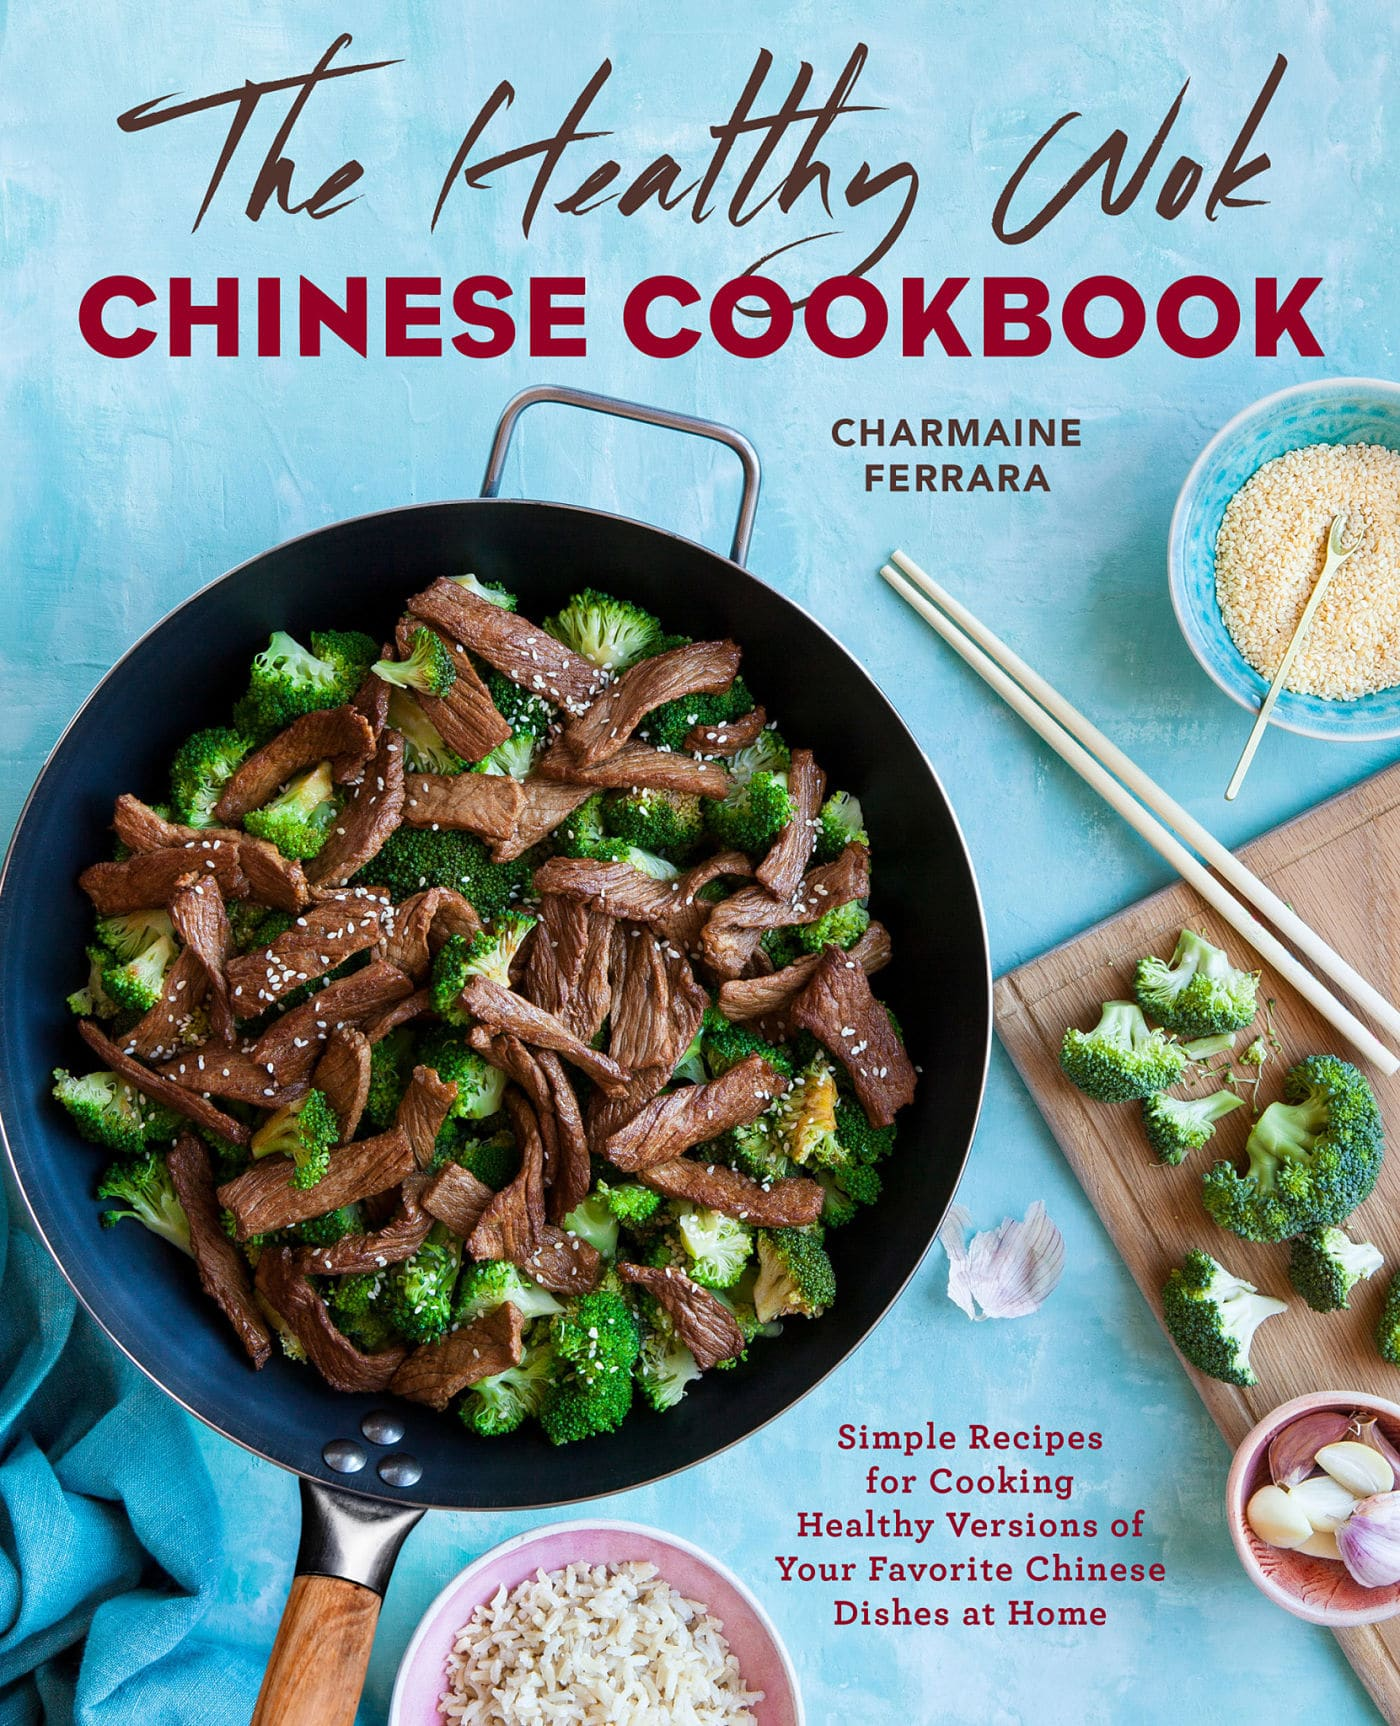 The Healthy Wok cookbook by Charmaine Ferrara